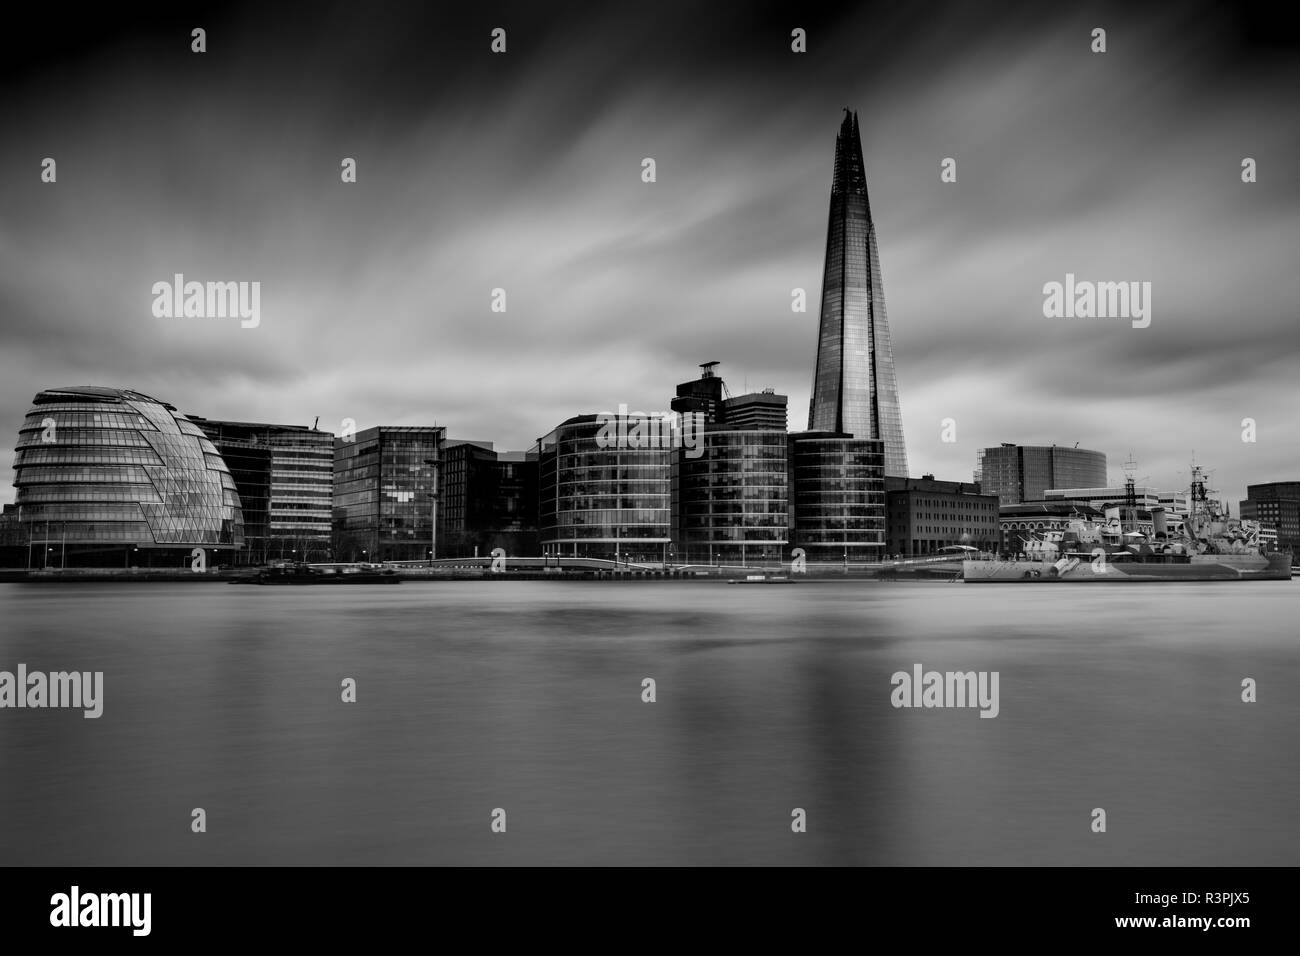 The Shard and surrounding buildings from the river Thames - Stock Image